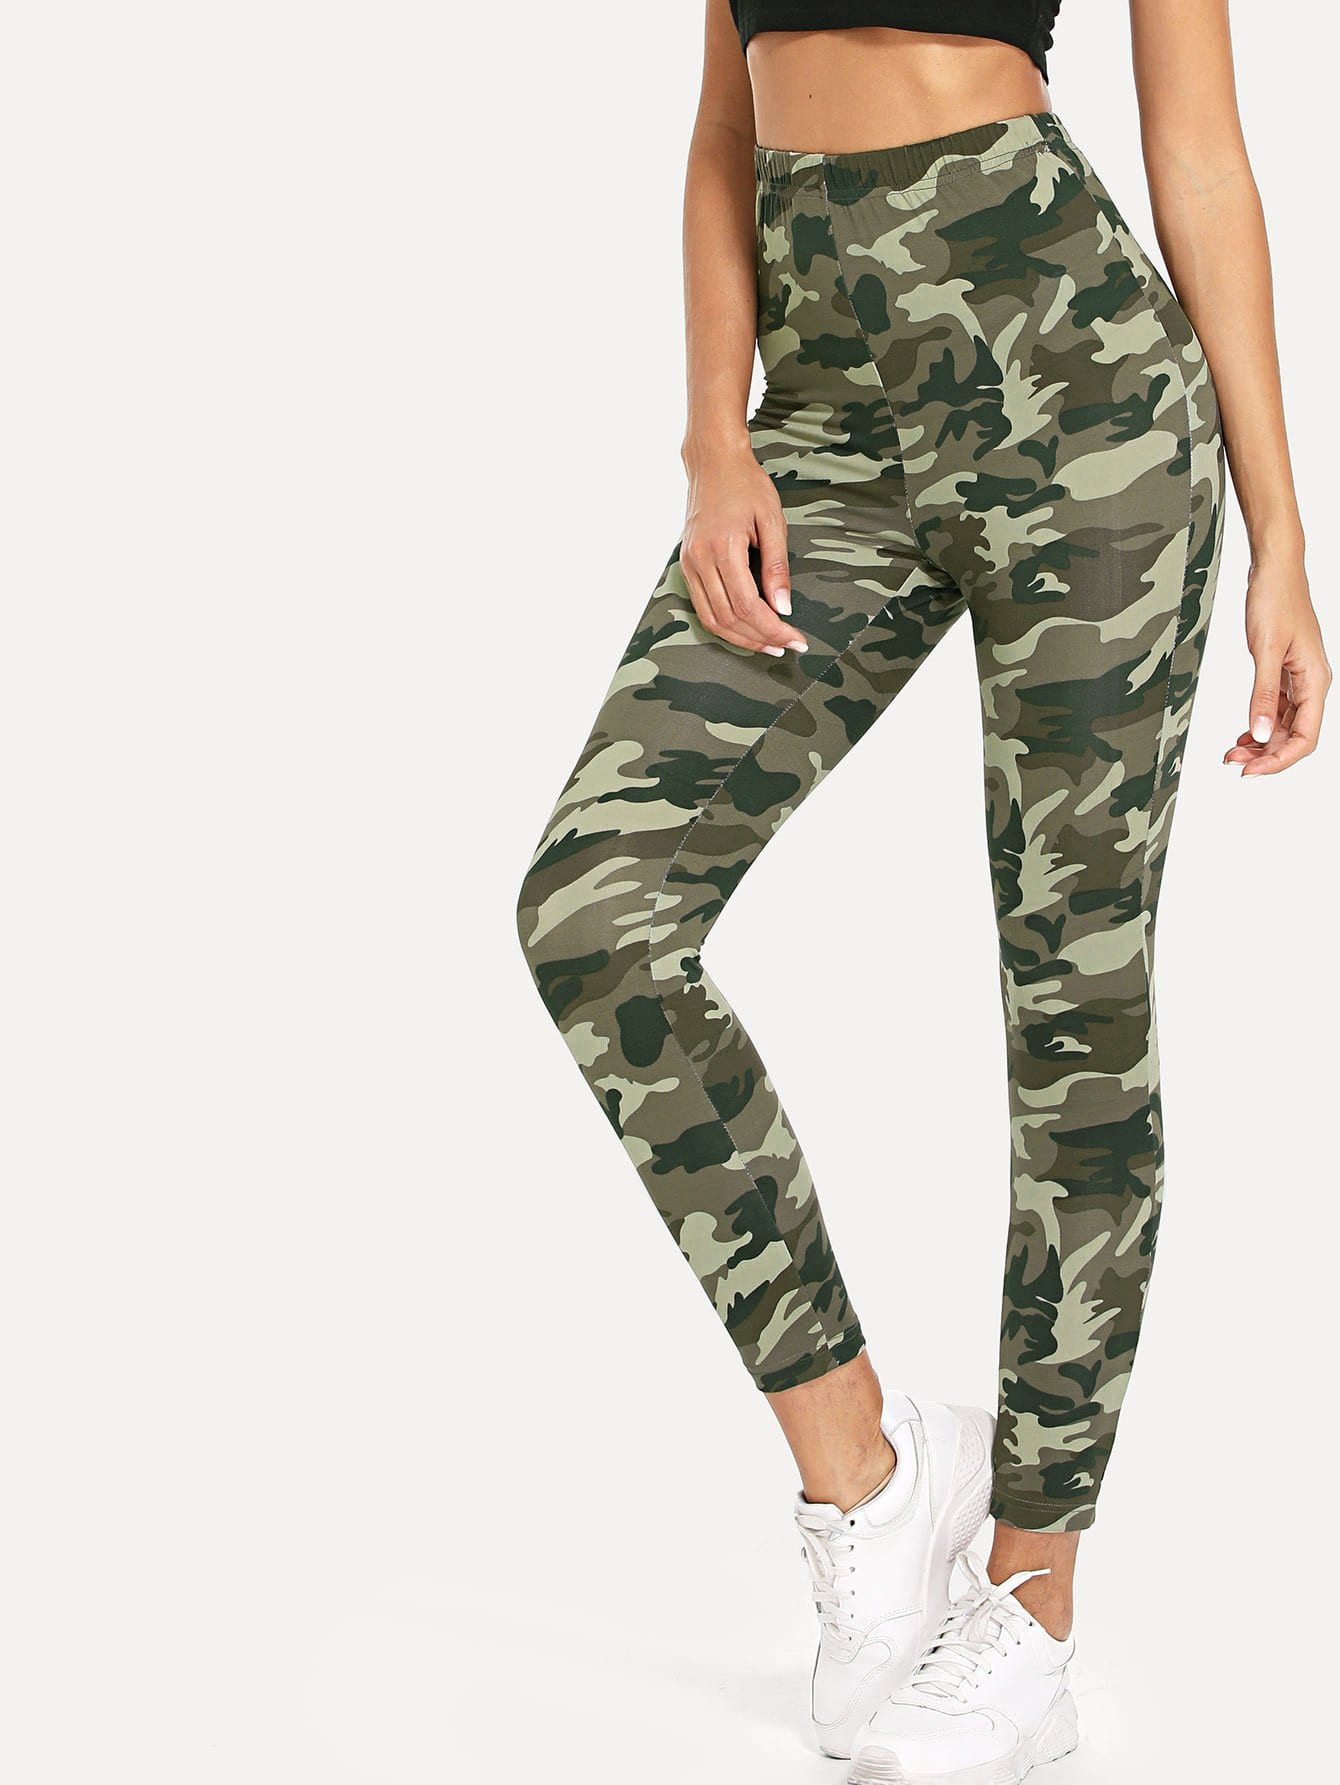 High Waist Camo Print Skinny Leggings high waist camo print skinny leggings